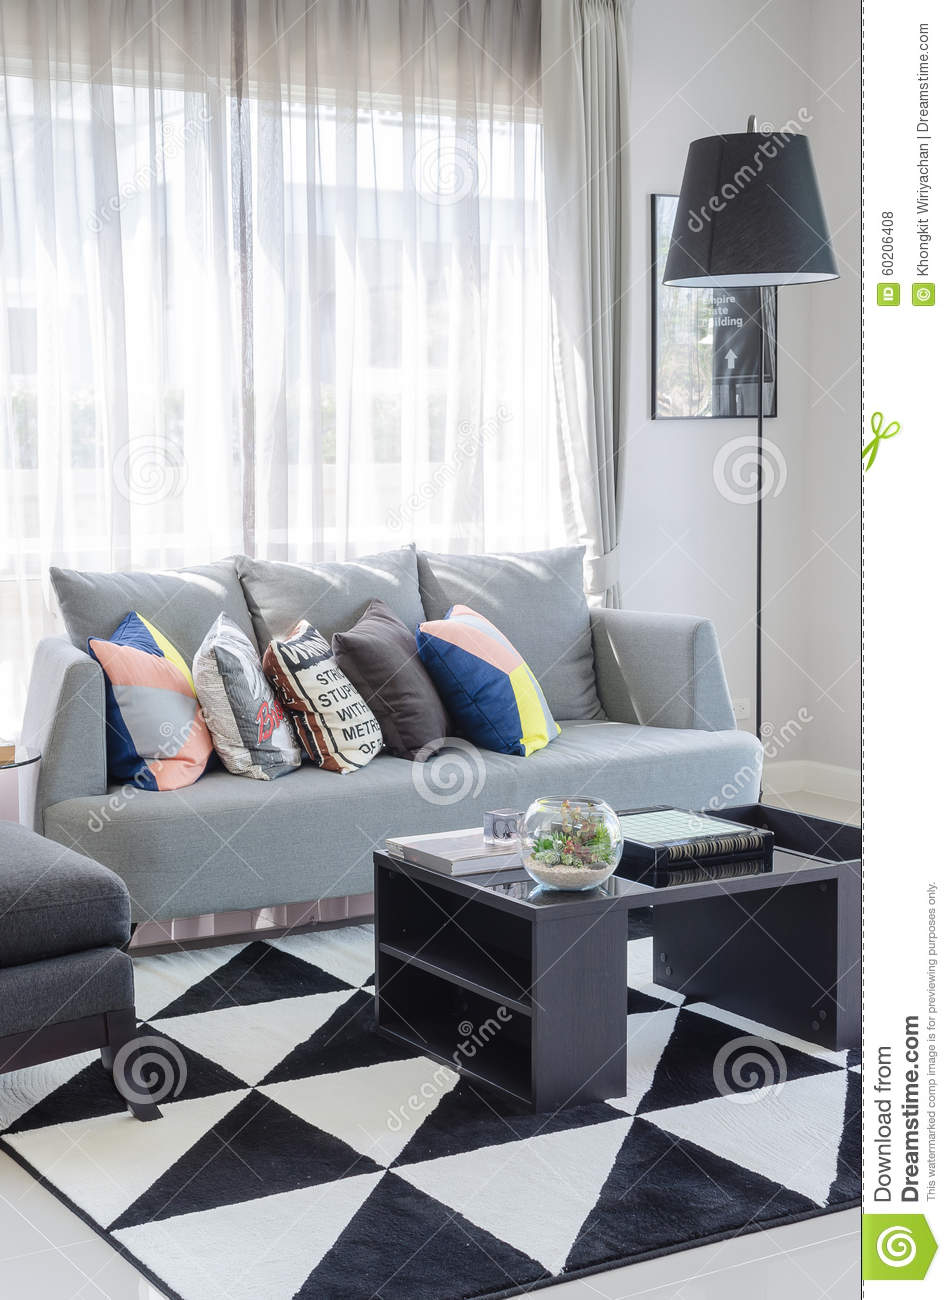 ton noir et blanc de couleur de salon avec le sofa gris moderne photo stock image du. Black Bedroom Furniture Sets. Home Design Ideas